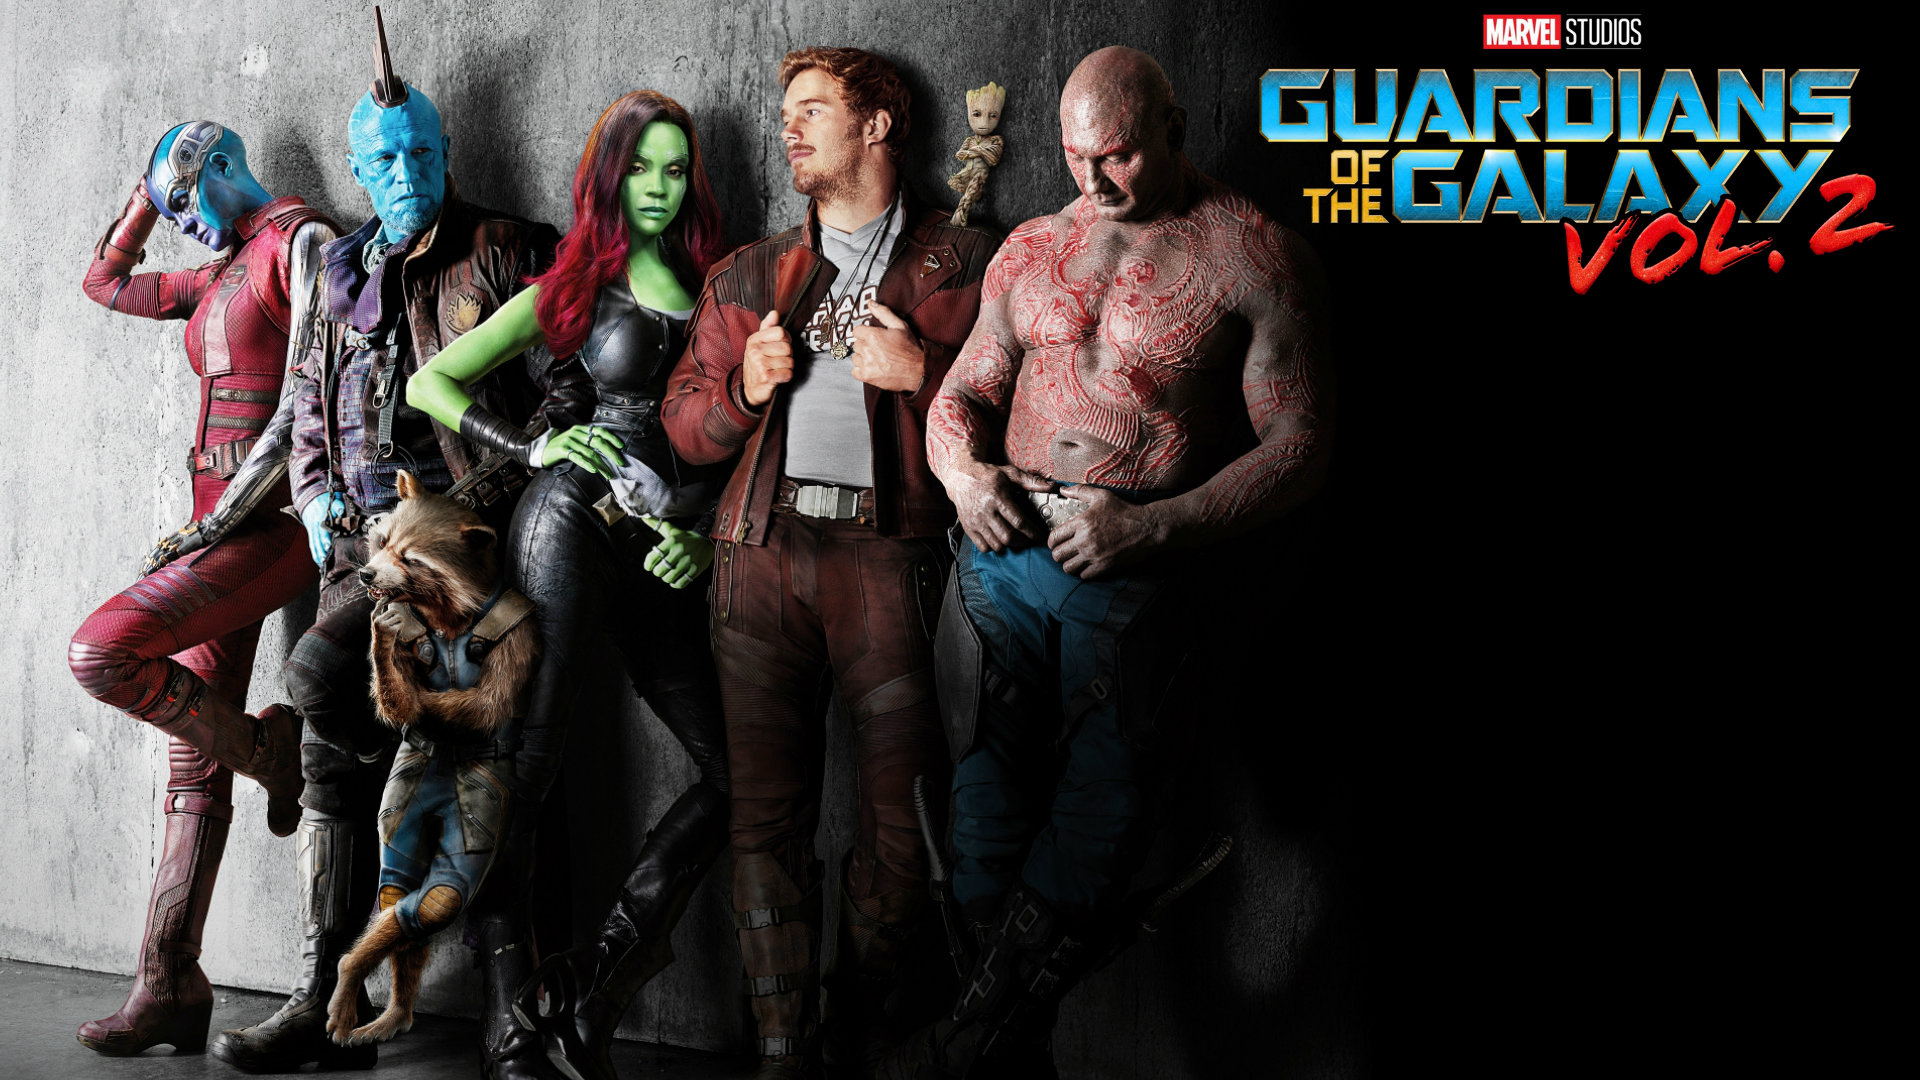 Guardians Of The Galaxy Vol 2 2017 Guardians Of The Galaxy Wallpaper 42726040 Fanpop Page 5